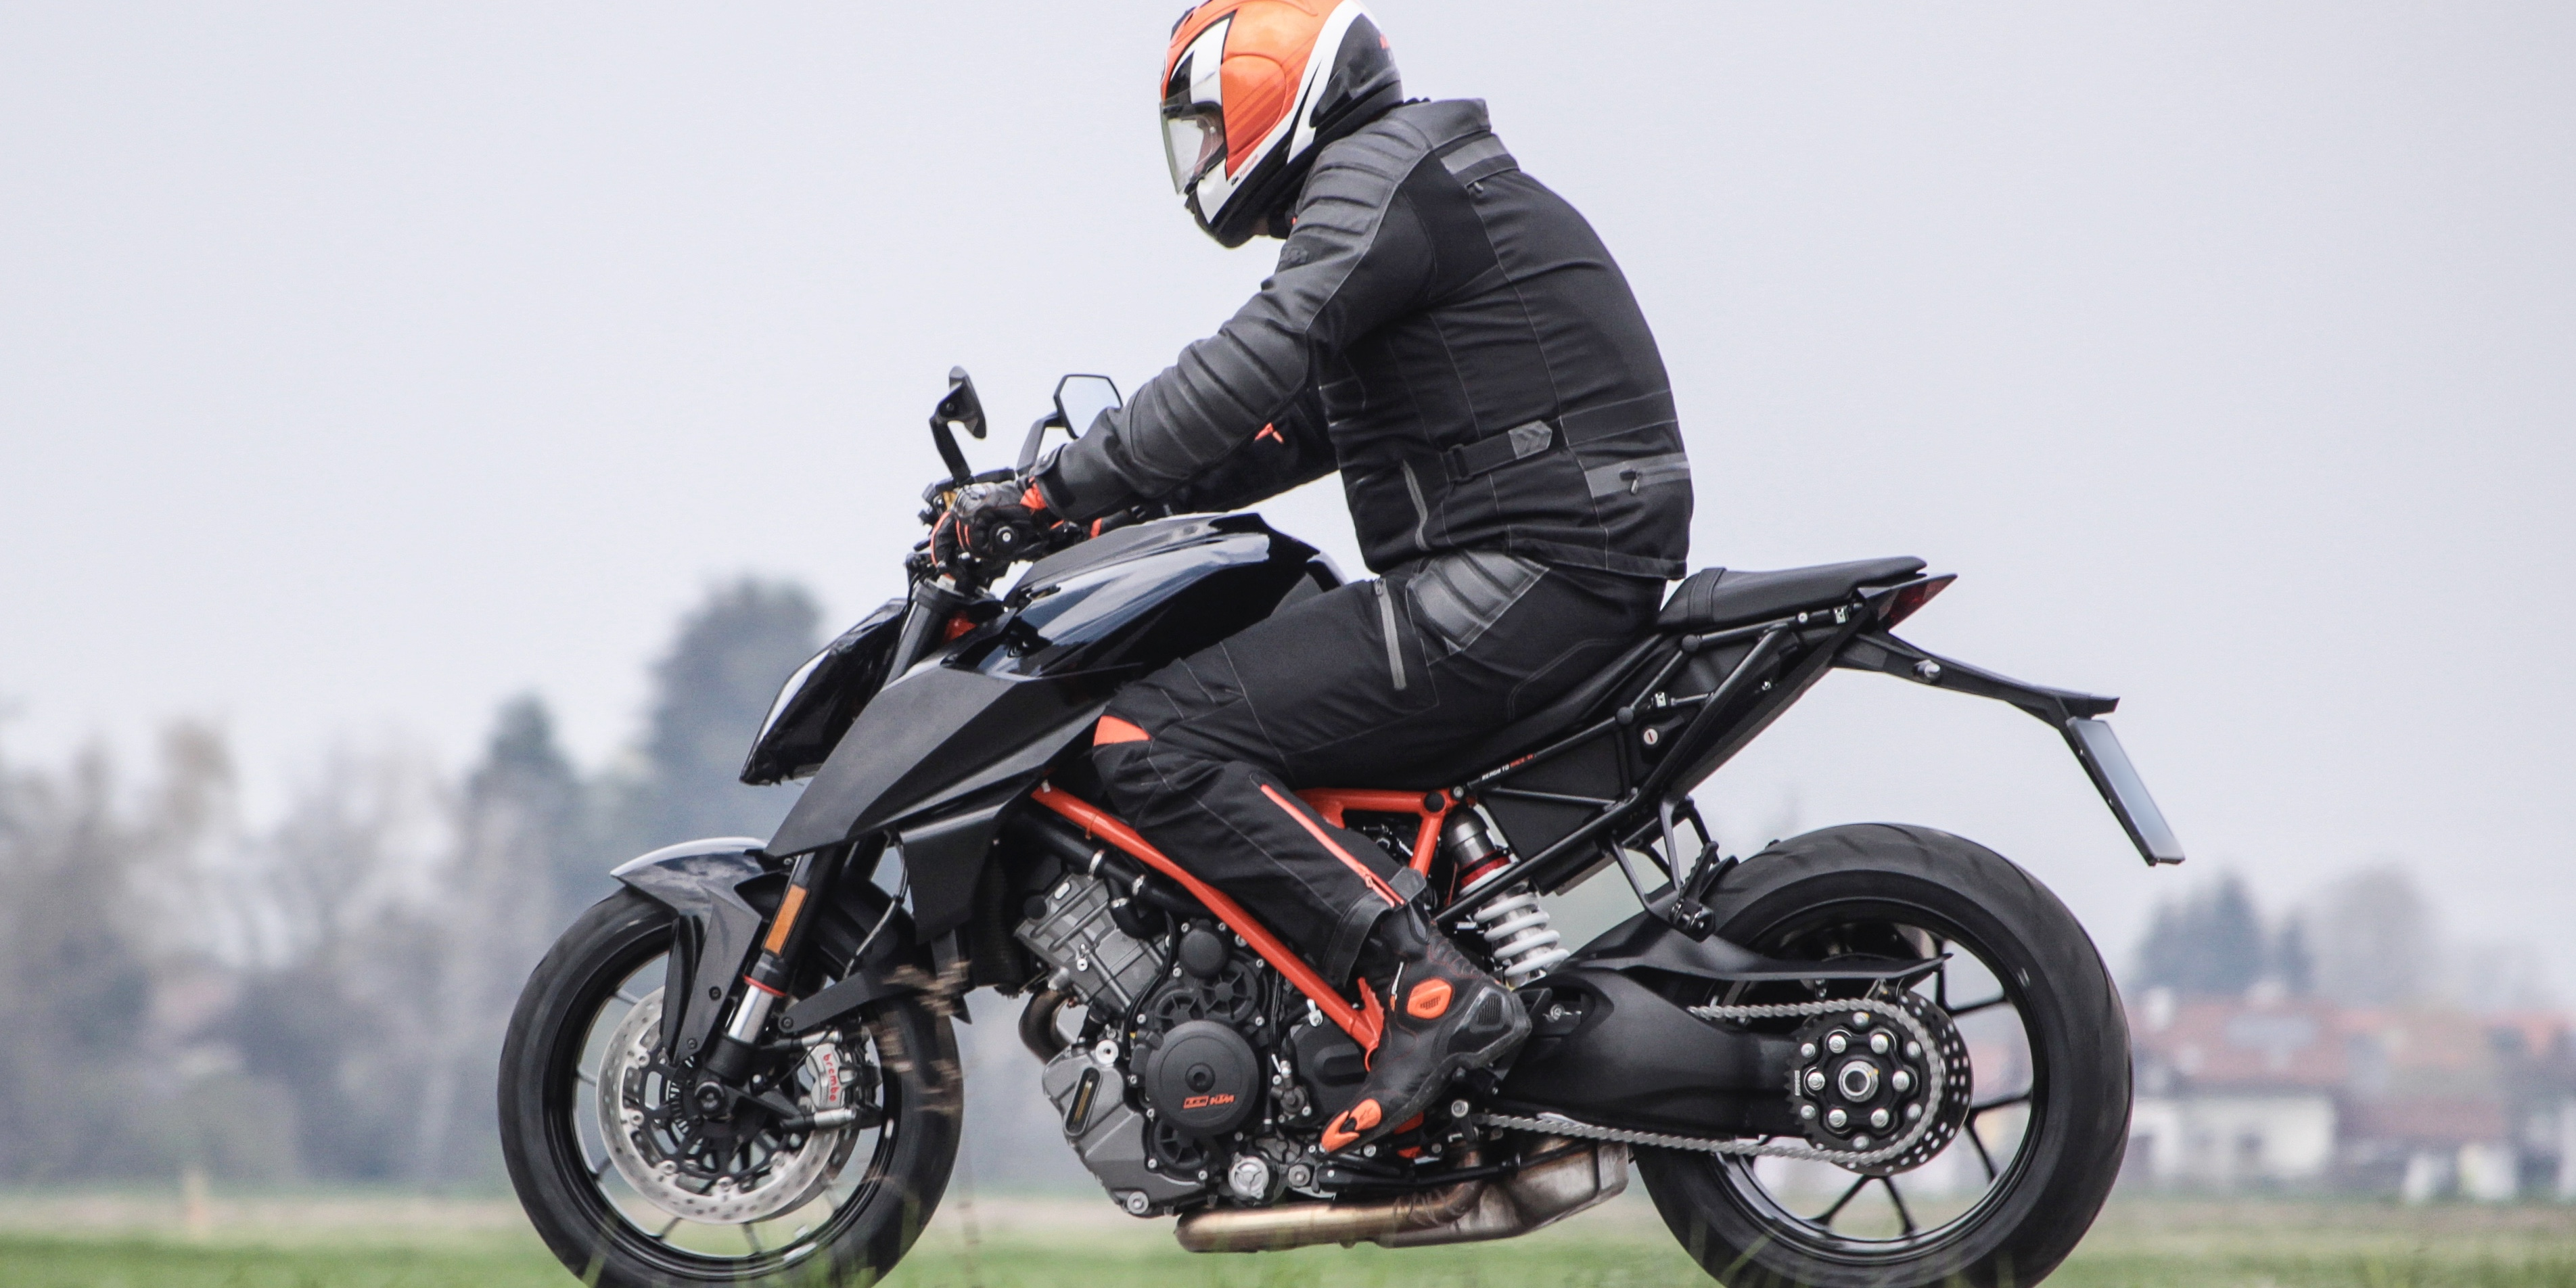 2018 ktm 1290 super duke r.  2018 and 2018 ktm 1290 super duke r g